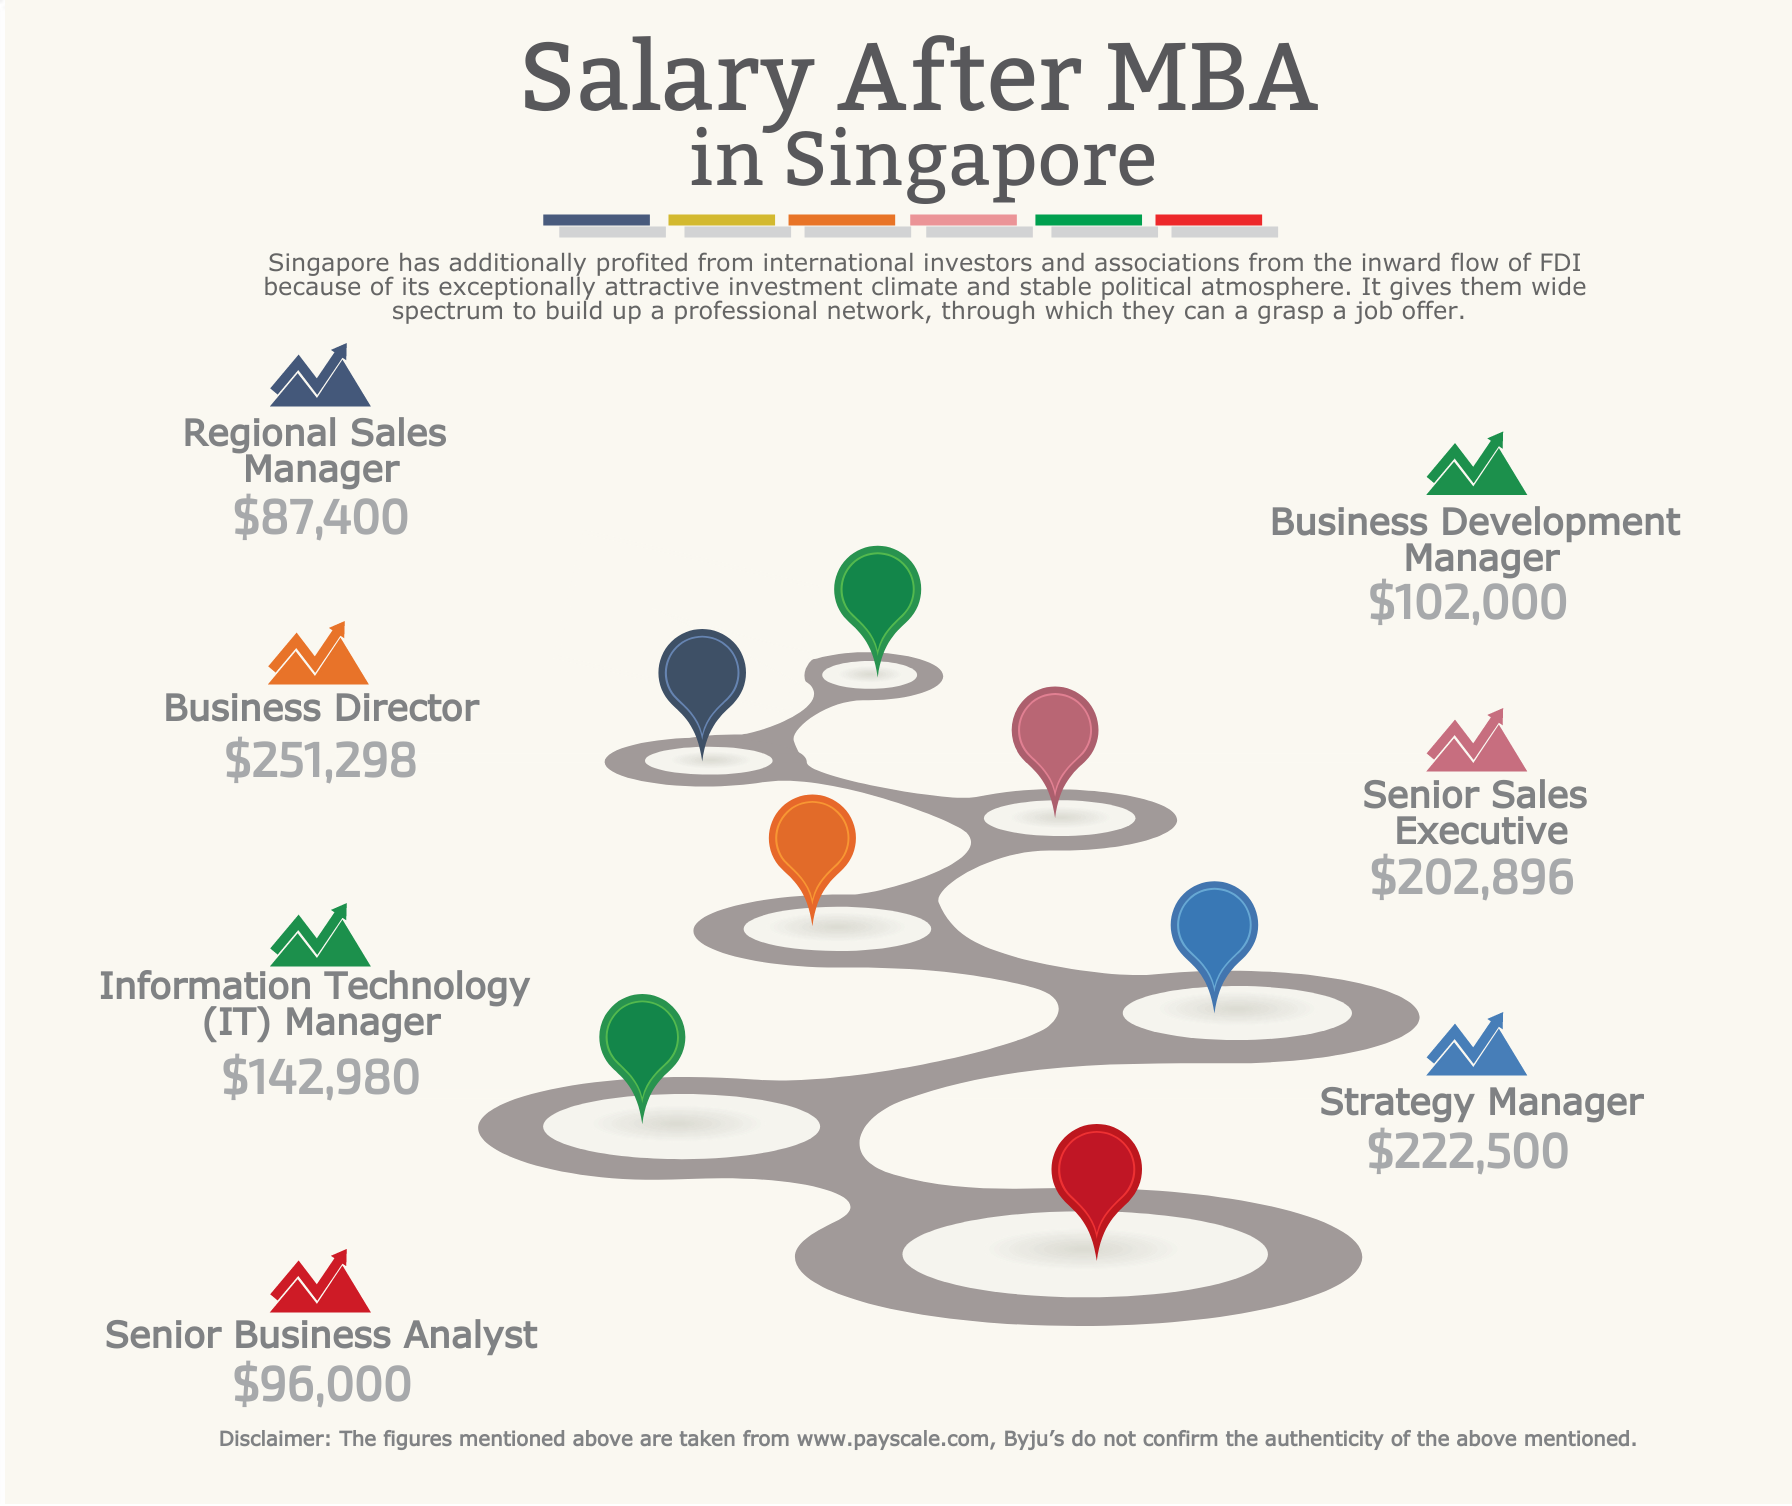 What Salary Will You Make After Your MBA in Singapore